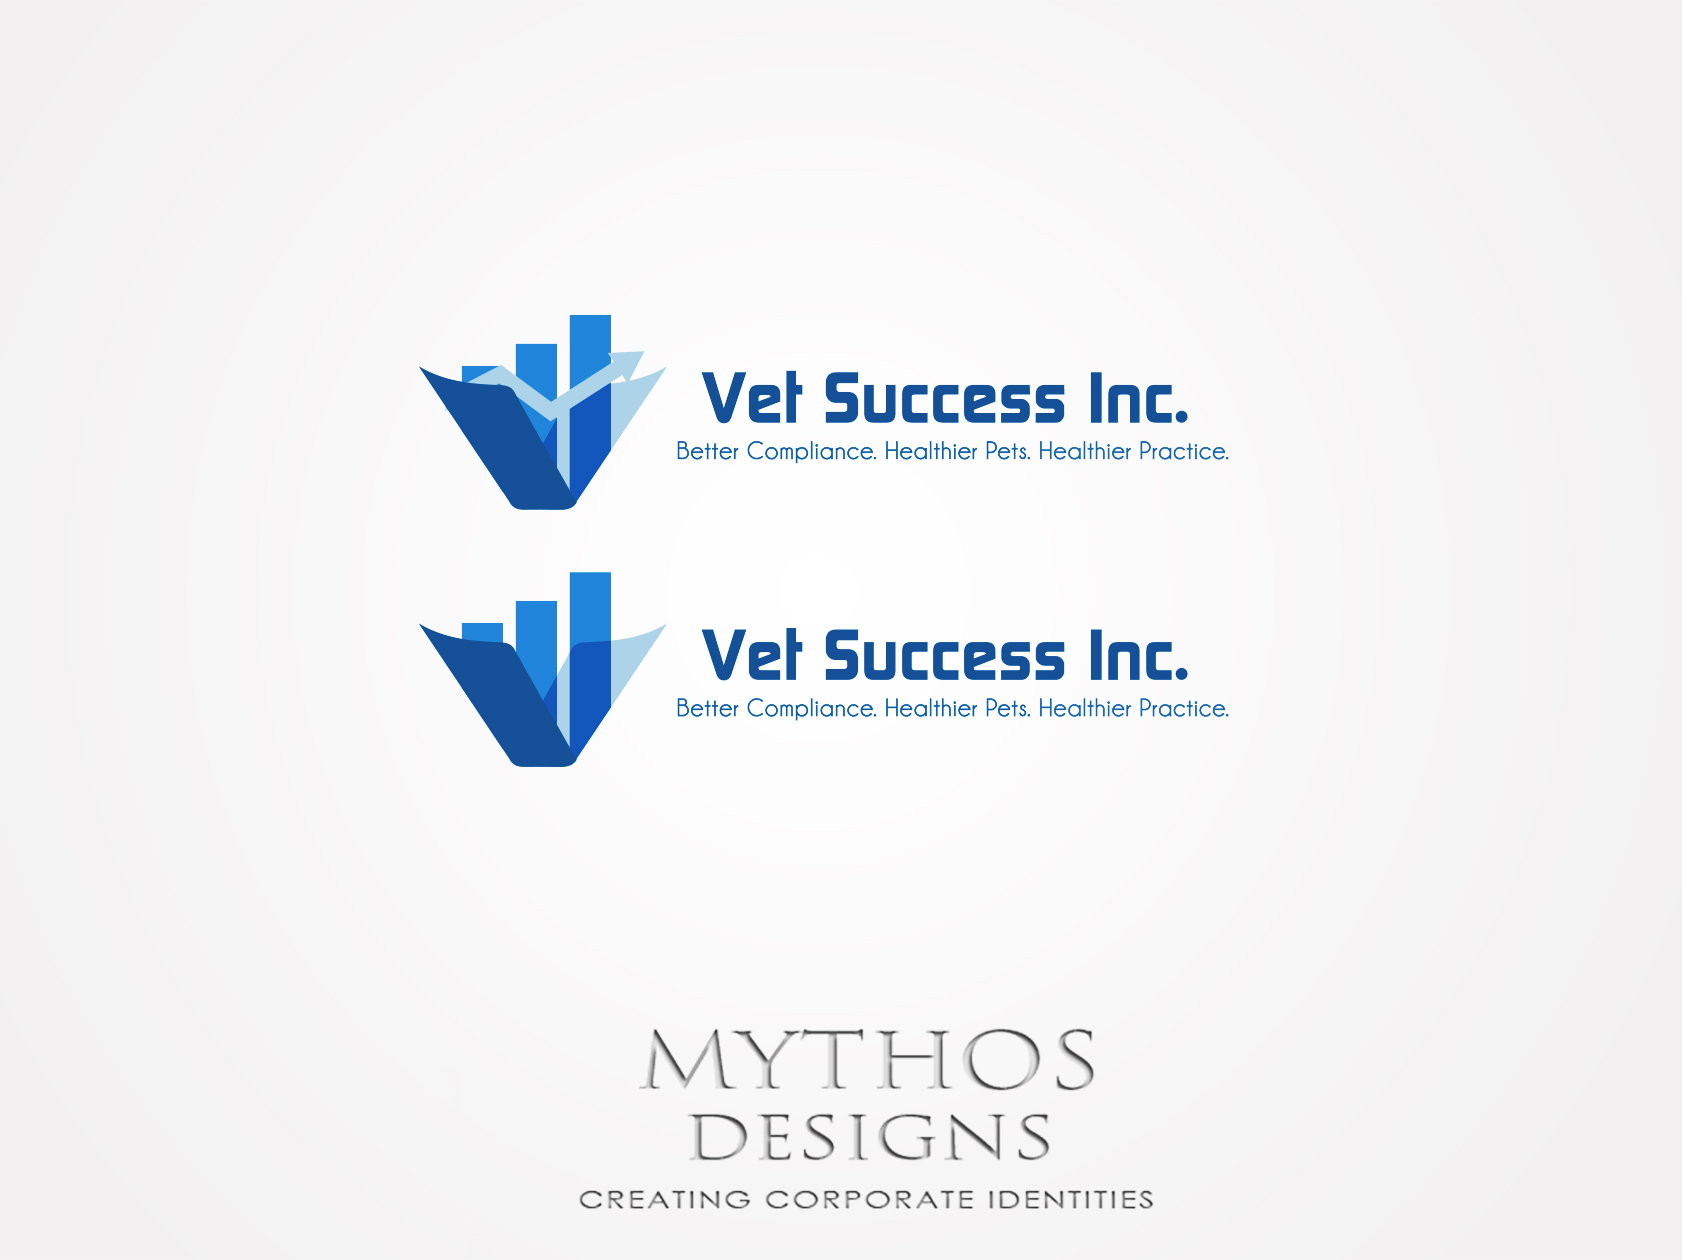 Logo Design by Mythos Designs - Entry No. 119 in the Logo Design Contest Imaginative Logo Design for Vet Success Inc..